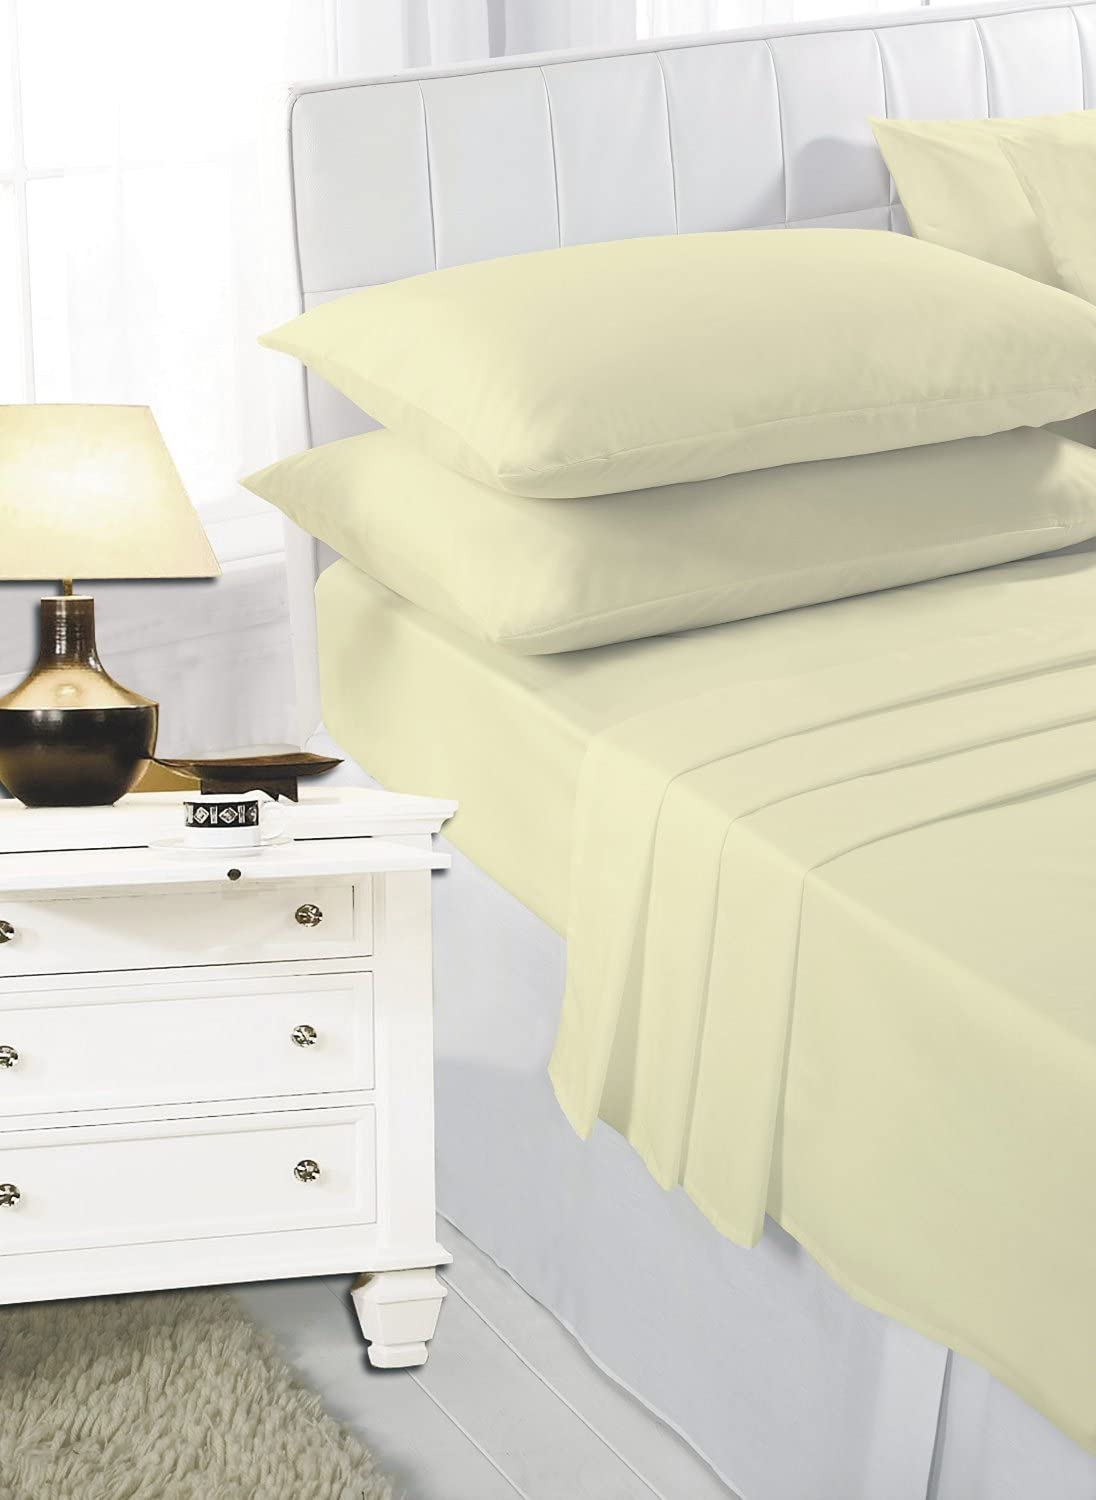 Black, Double Lifestyle Production @ 180 Thread Count Non Iron Percale Double Bed Flat Sheet With Pillowcase